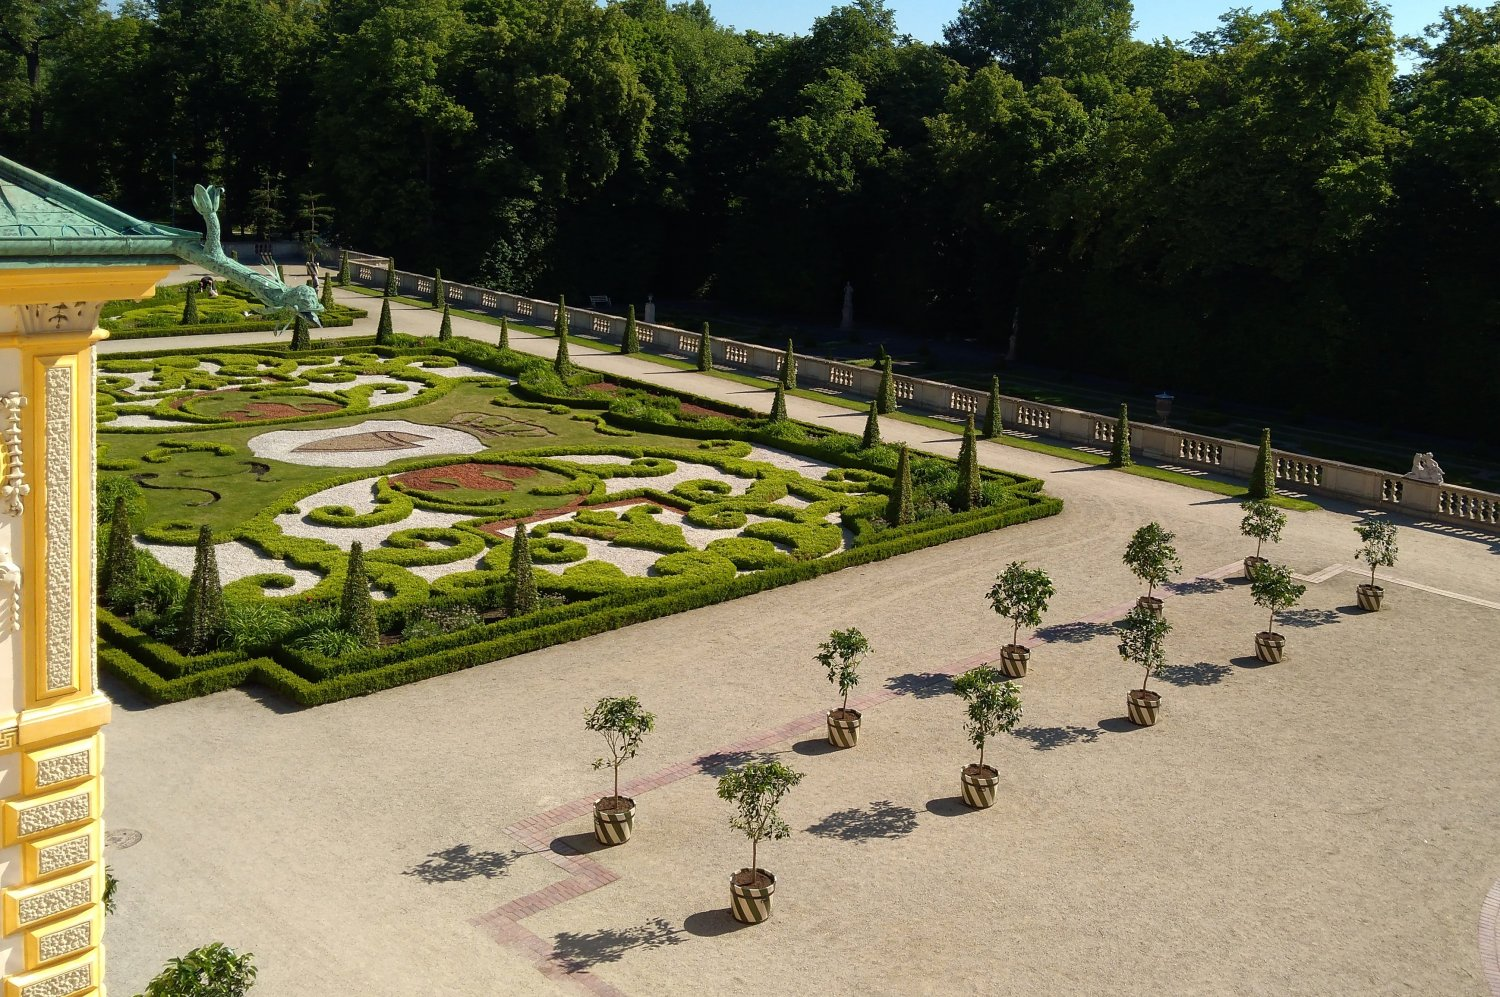 Part of the garden embroidery parterre with the citrus trees on the upper baroque garden at Wilanów